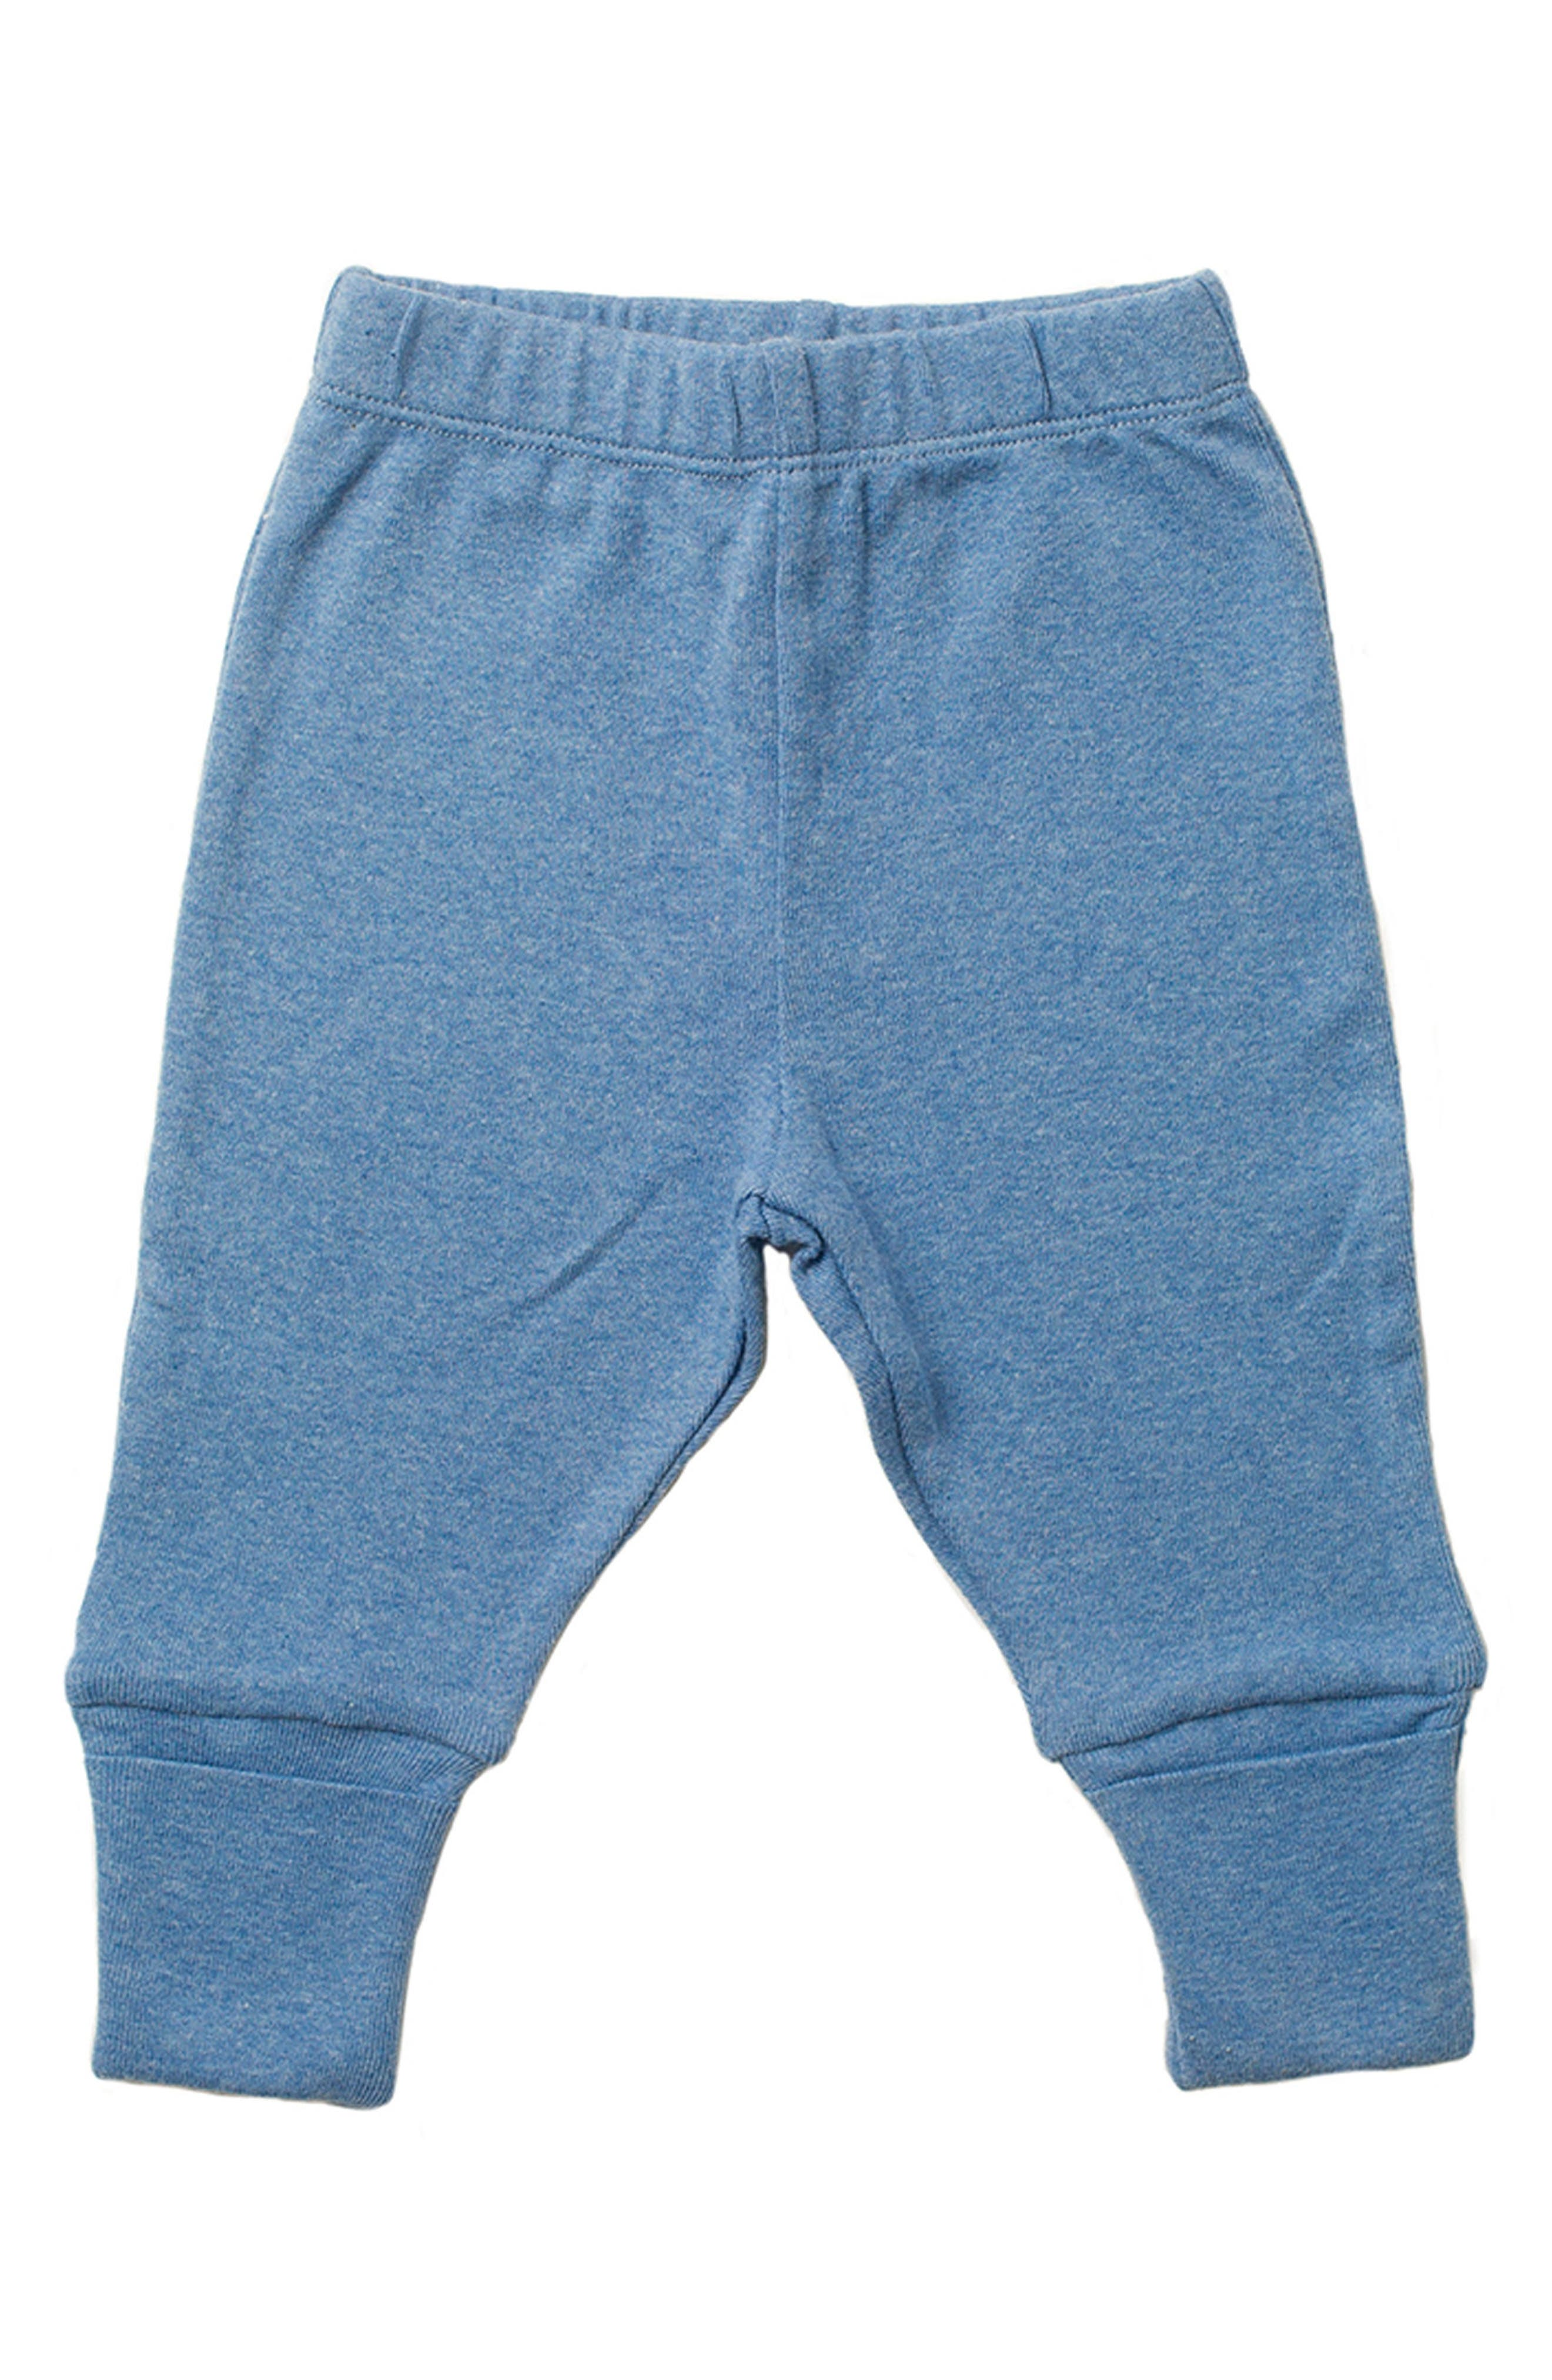 Monica + Andy Hello Baby Organic Cotton Sweatpants (Baby)